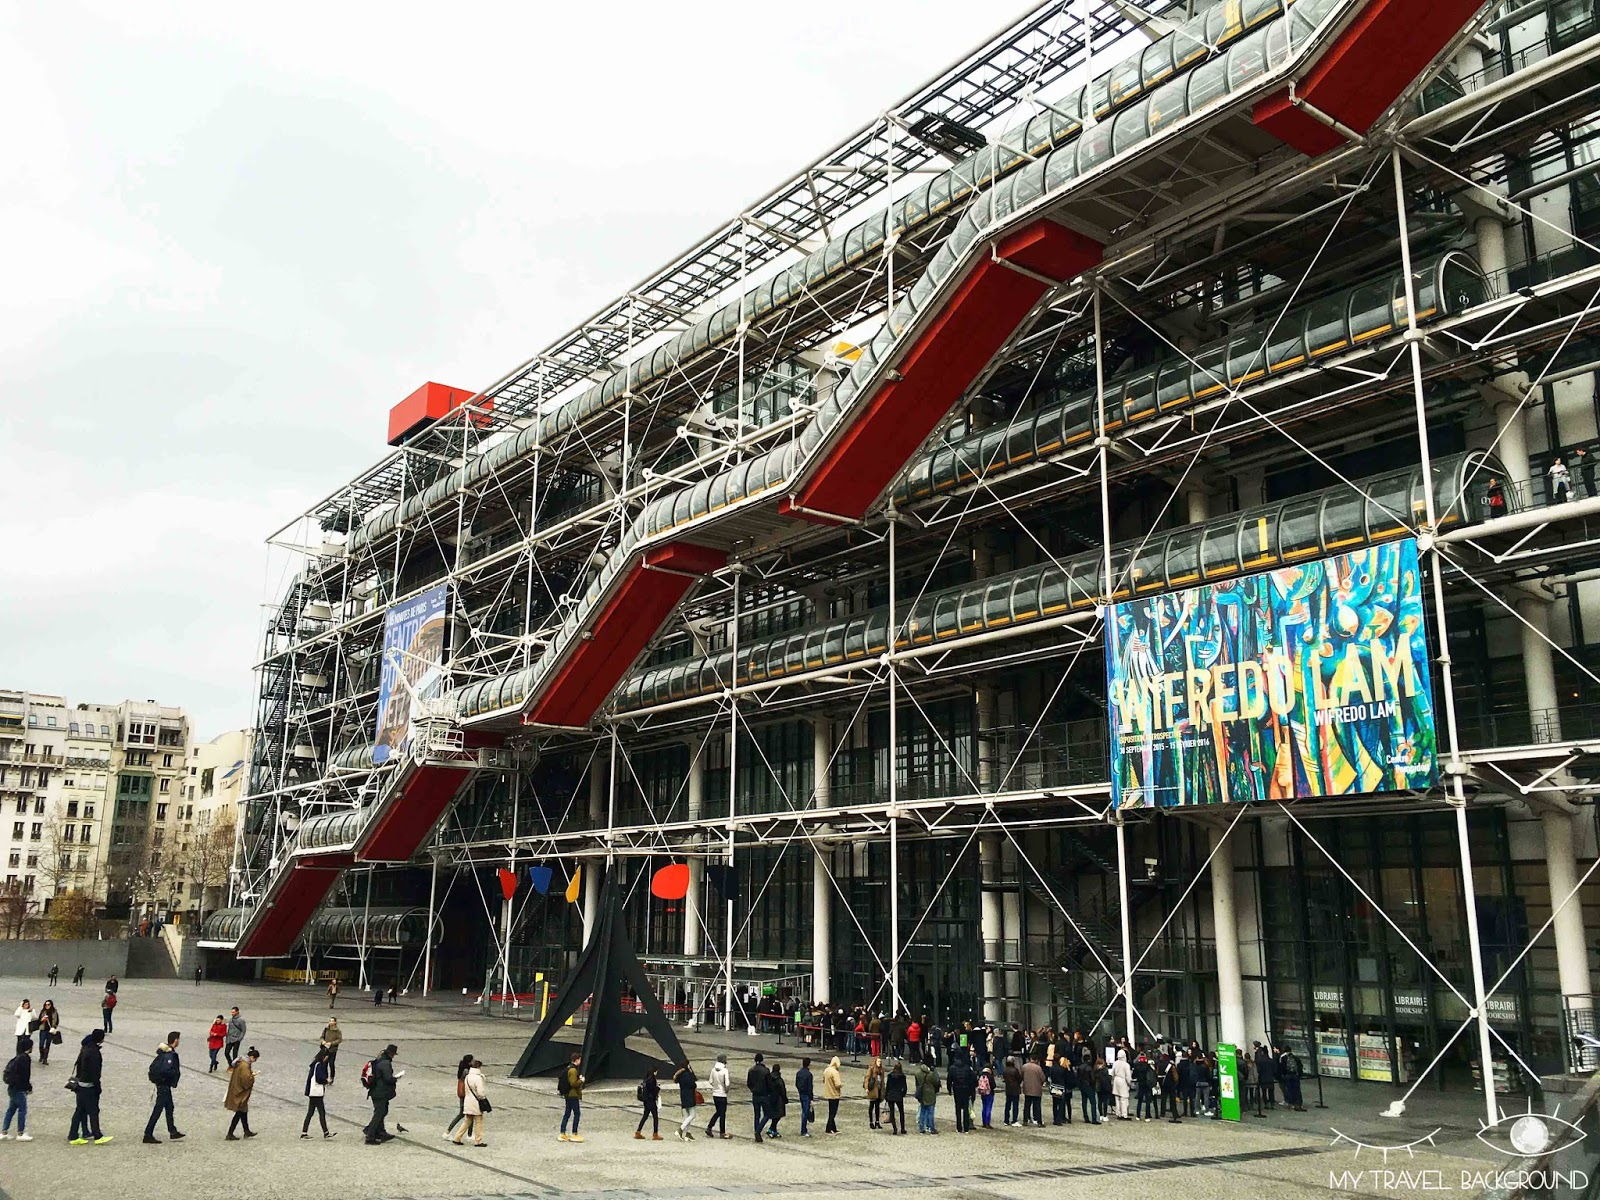 My Travel Background : #ParisPromenade, Le Marais - Centre Pompidou